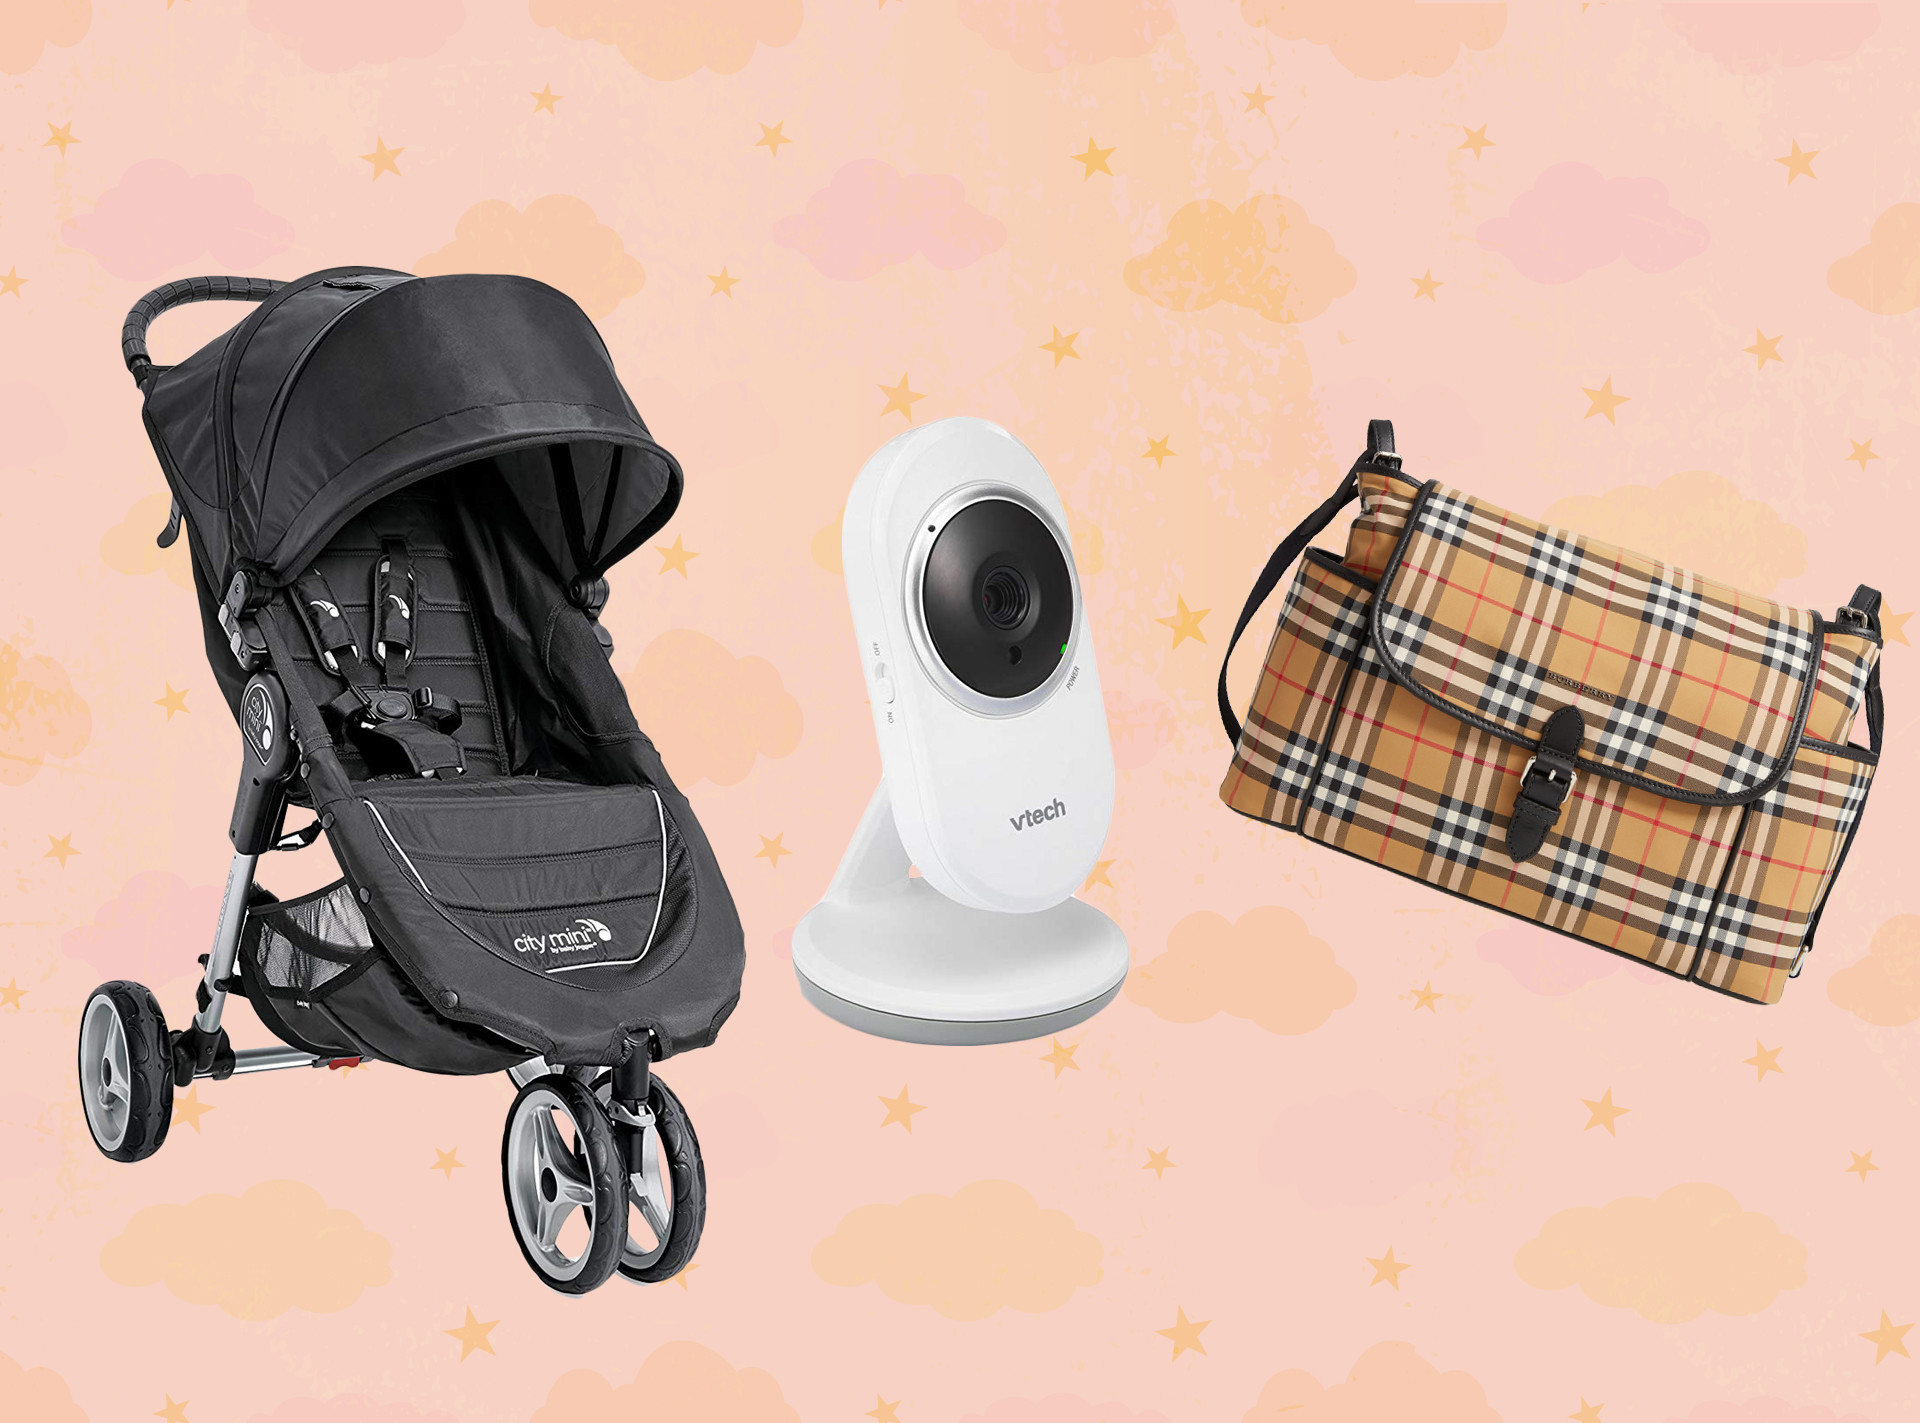 Best Baby Shower Gifts According to Hip Moms